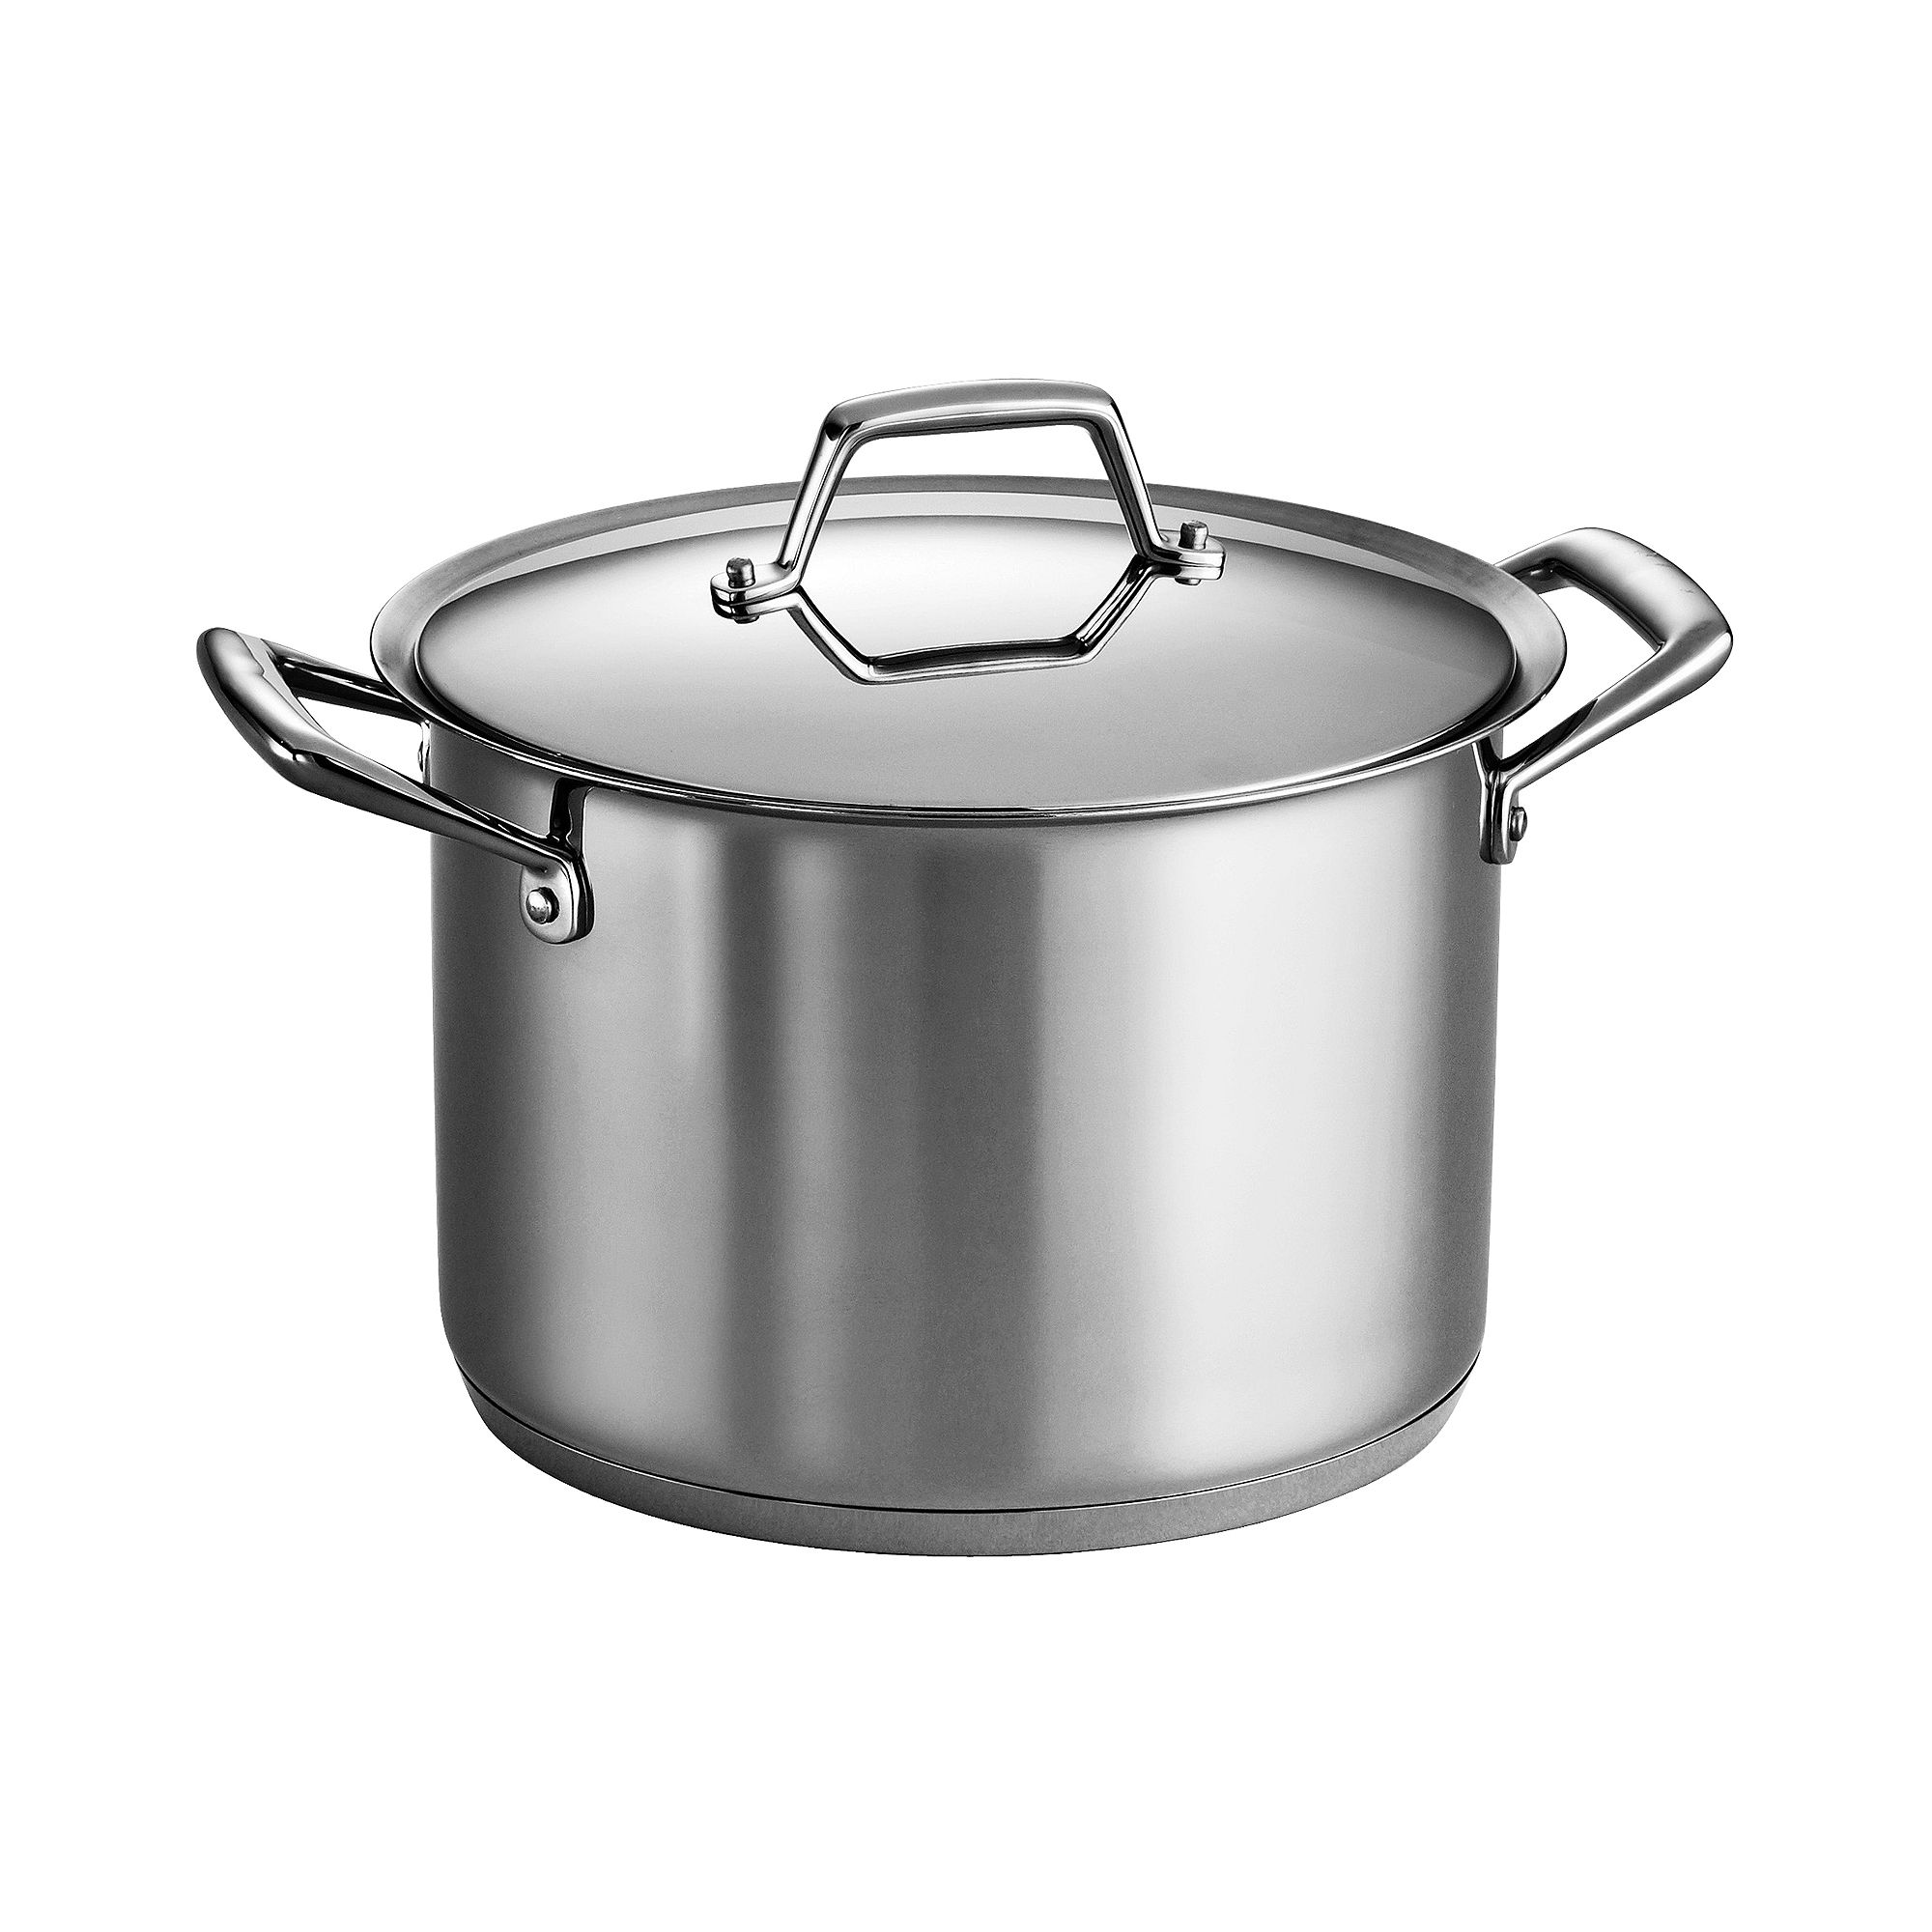 Tramontina Gourmet Prima Tri-Ply Stainless Steel Covered Stock Pot